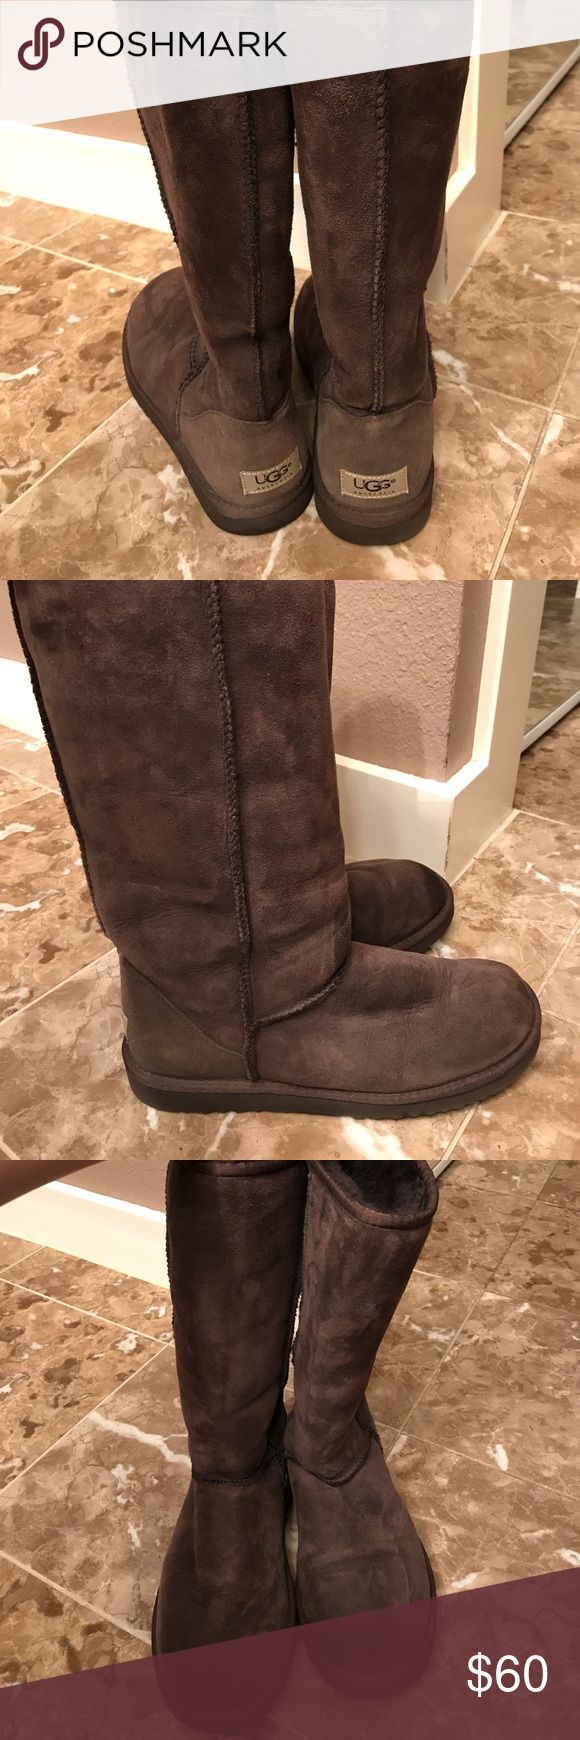 Women's UGG Classic Tall Boot Women's UGG Classic Tall Boot. Color: Chocolate. Size 9. Worn, but in great condition. Very comfortable! UGG Shoes Winter & Rain Boots